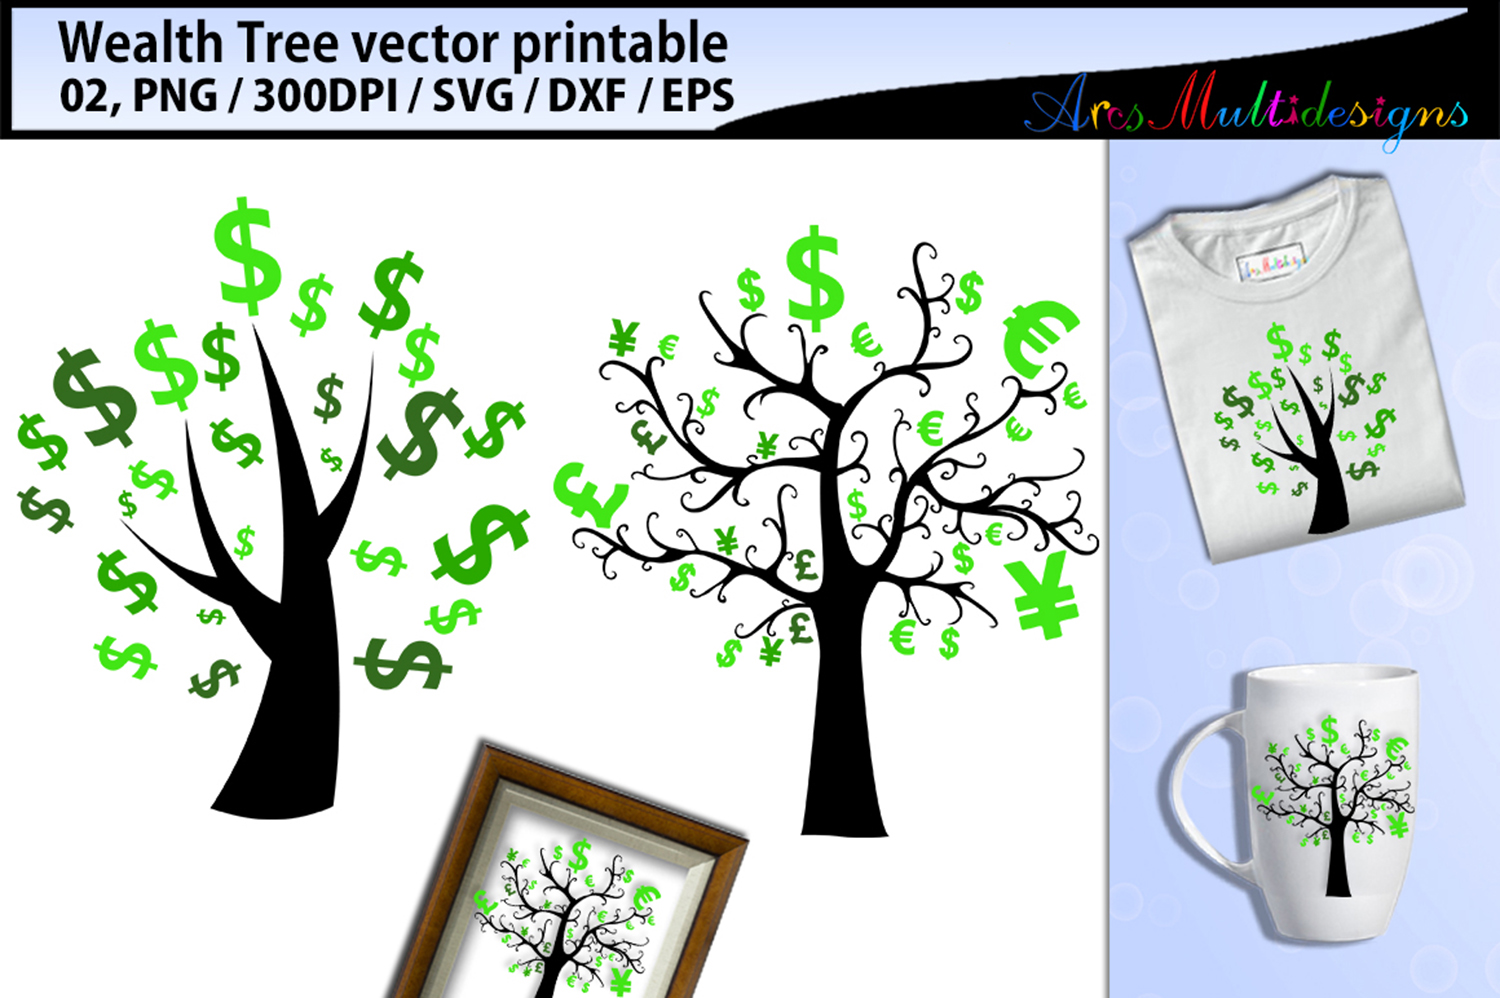 Download Free Wealth Tree Clipart Svg Graphic By Arcs Multidesigns Creative for Cricut Explore, Silhouette and other cutting machines.